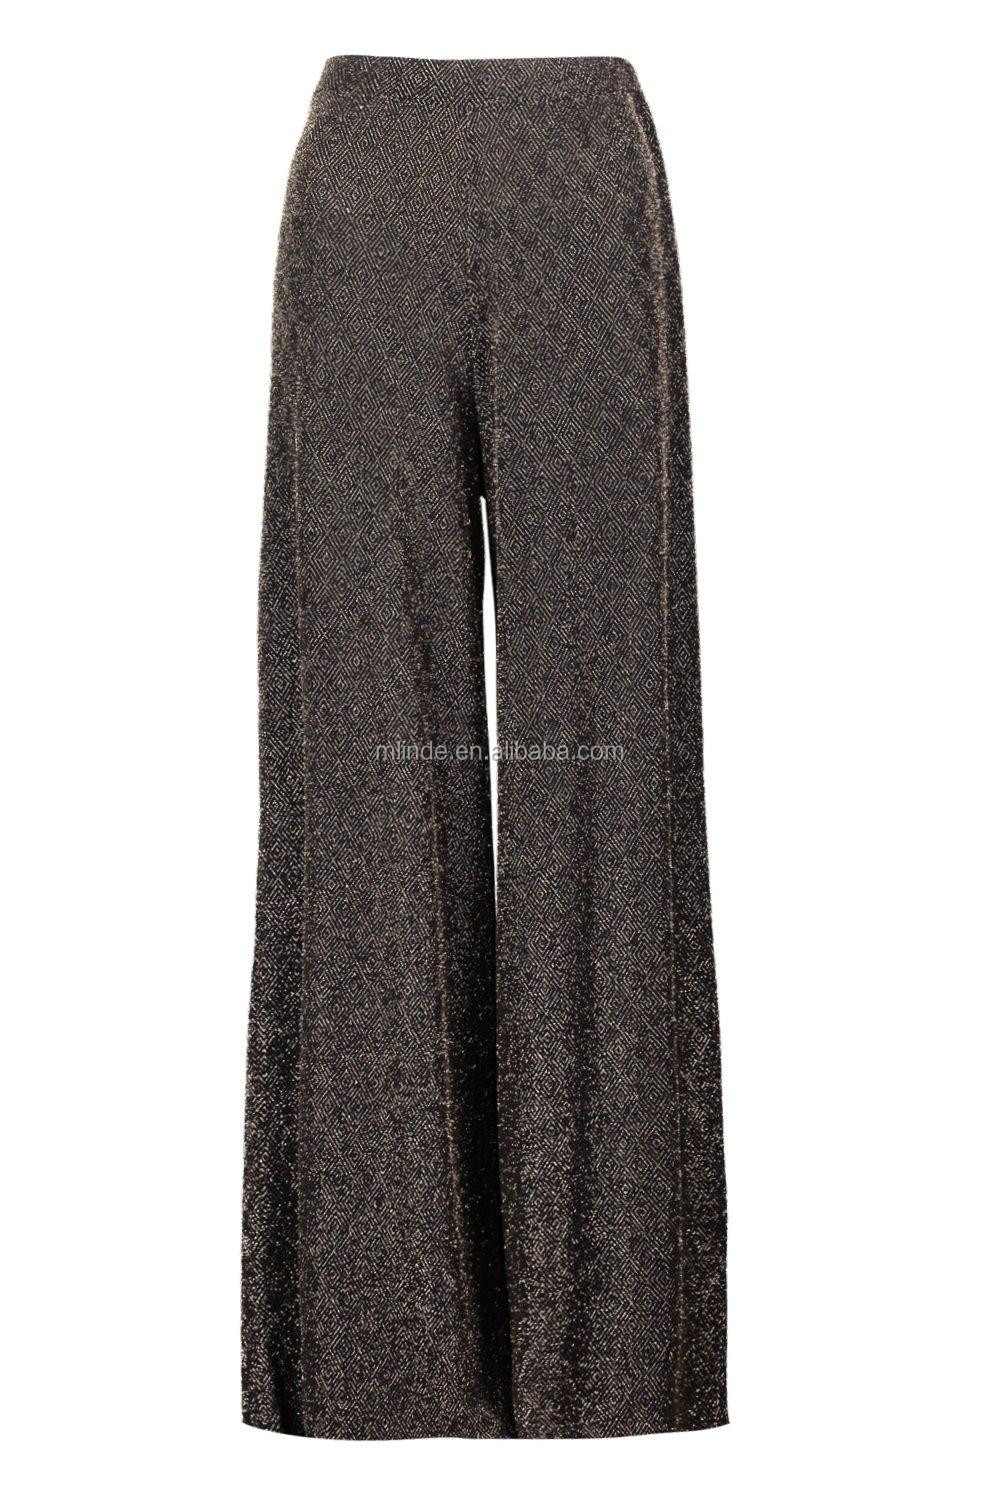 ab0339188e305 Women plus size palazzo pants Fashion Casual Pants Metallic Trouser Pants  Wide Leg